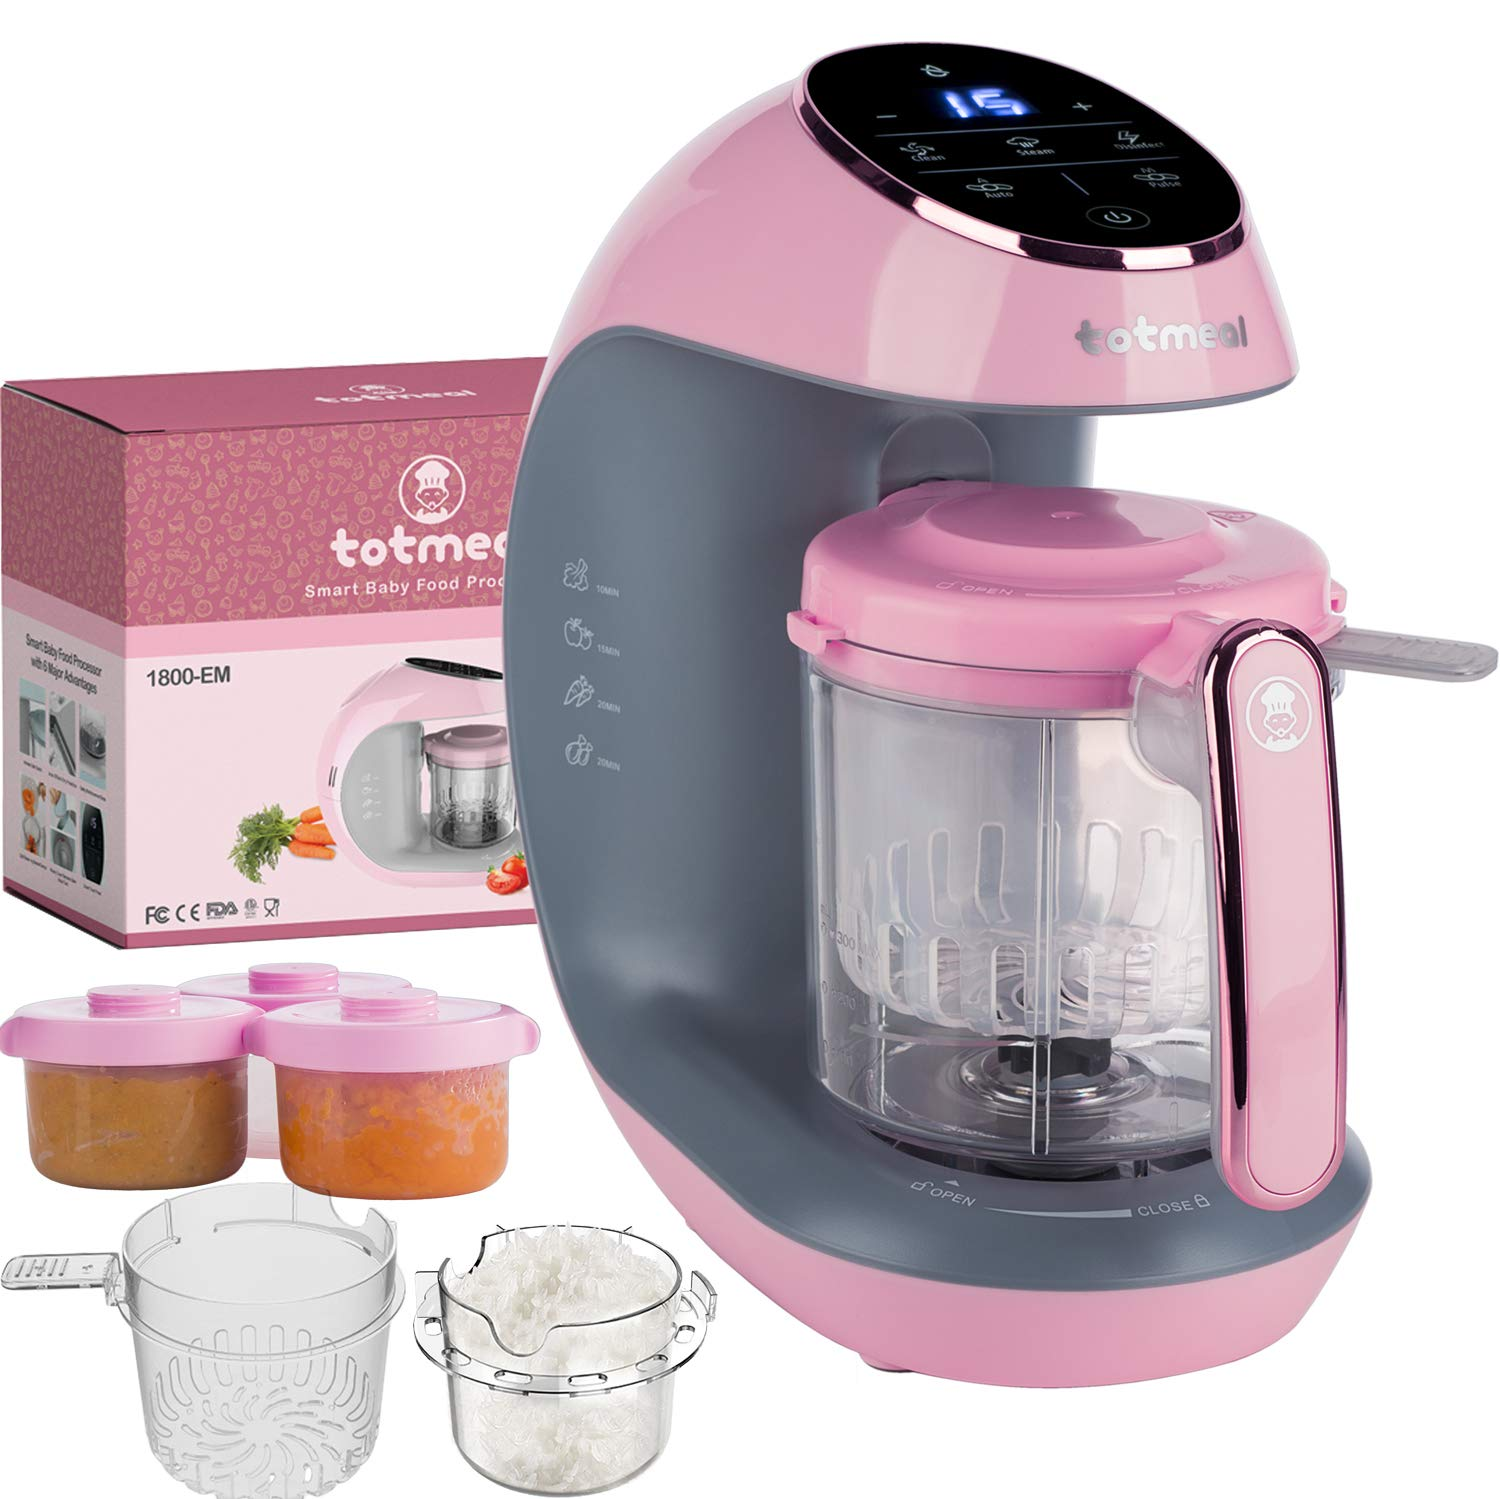 Baby Food Maker Package - The Fastest Baby Food Maker, Steamer, Mixer, Purer, Blender, Chopper, Auto Self Cleaning, Sterilizer, Food and Milk Bottle Warmer, w All Needed Accessories